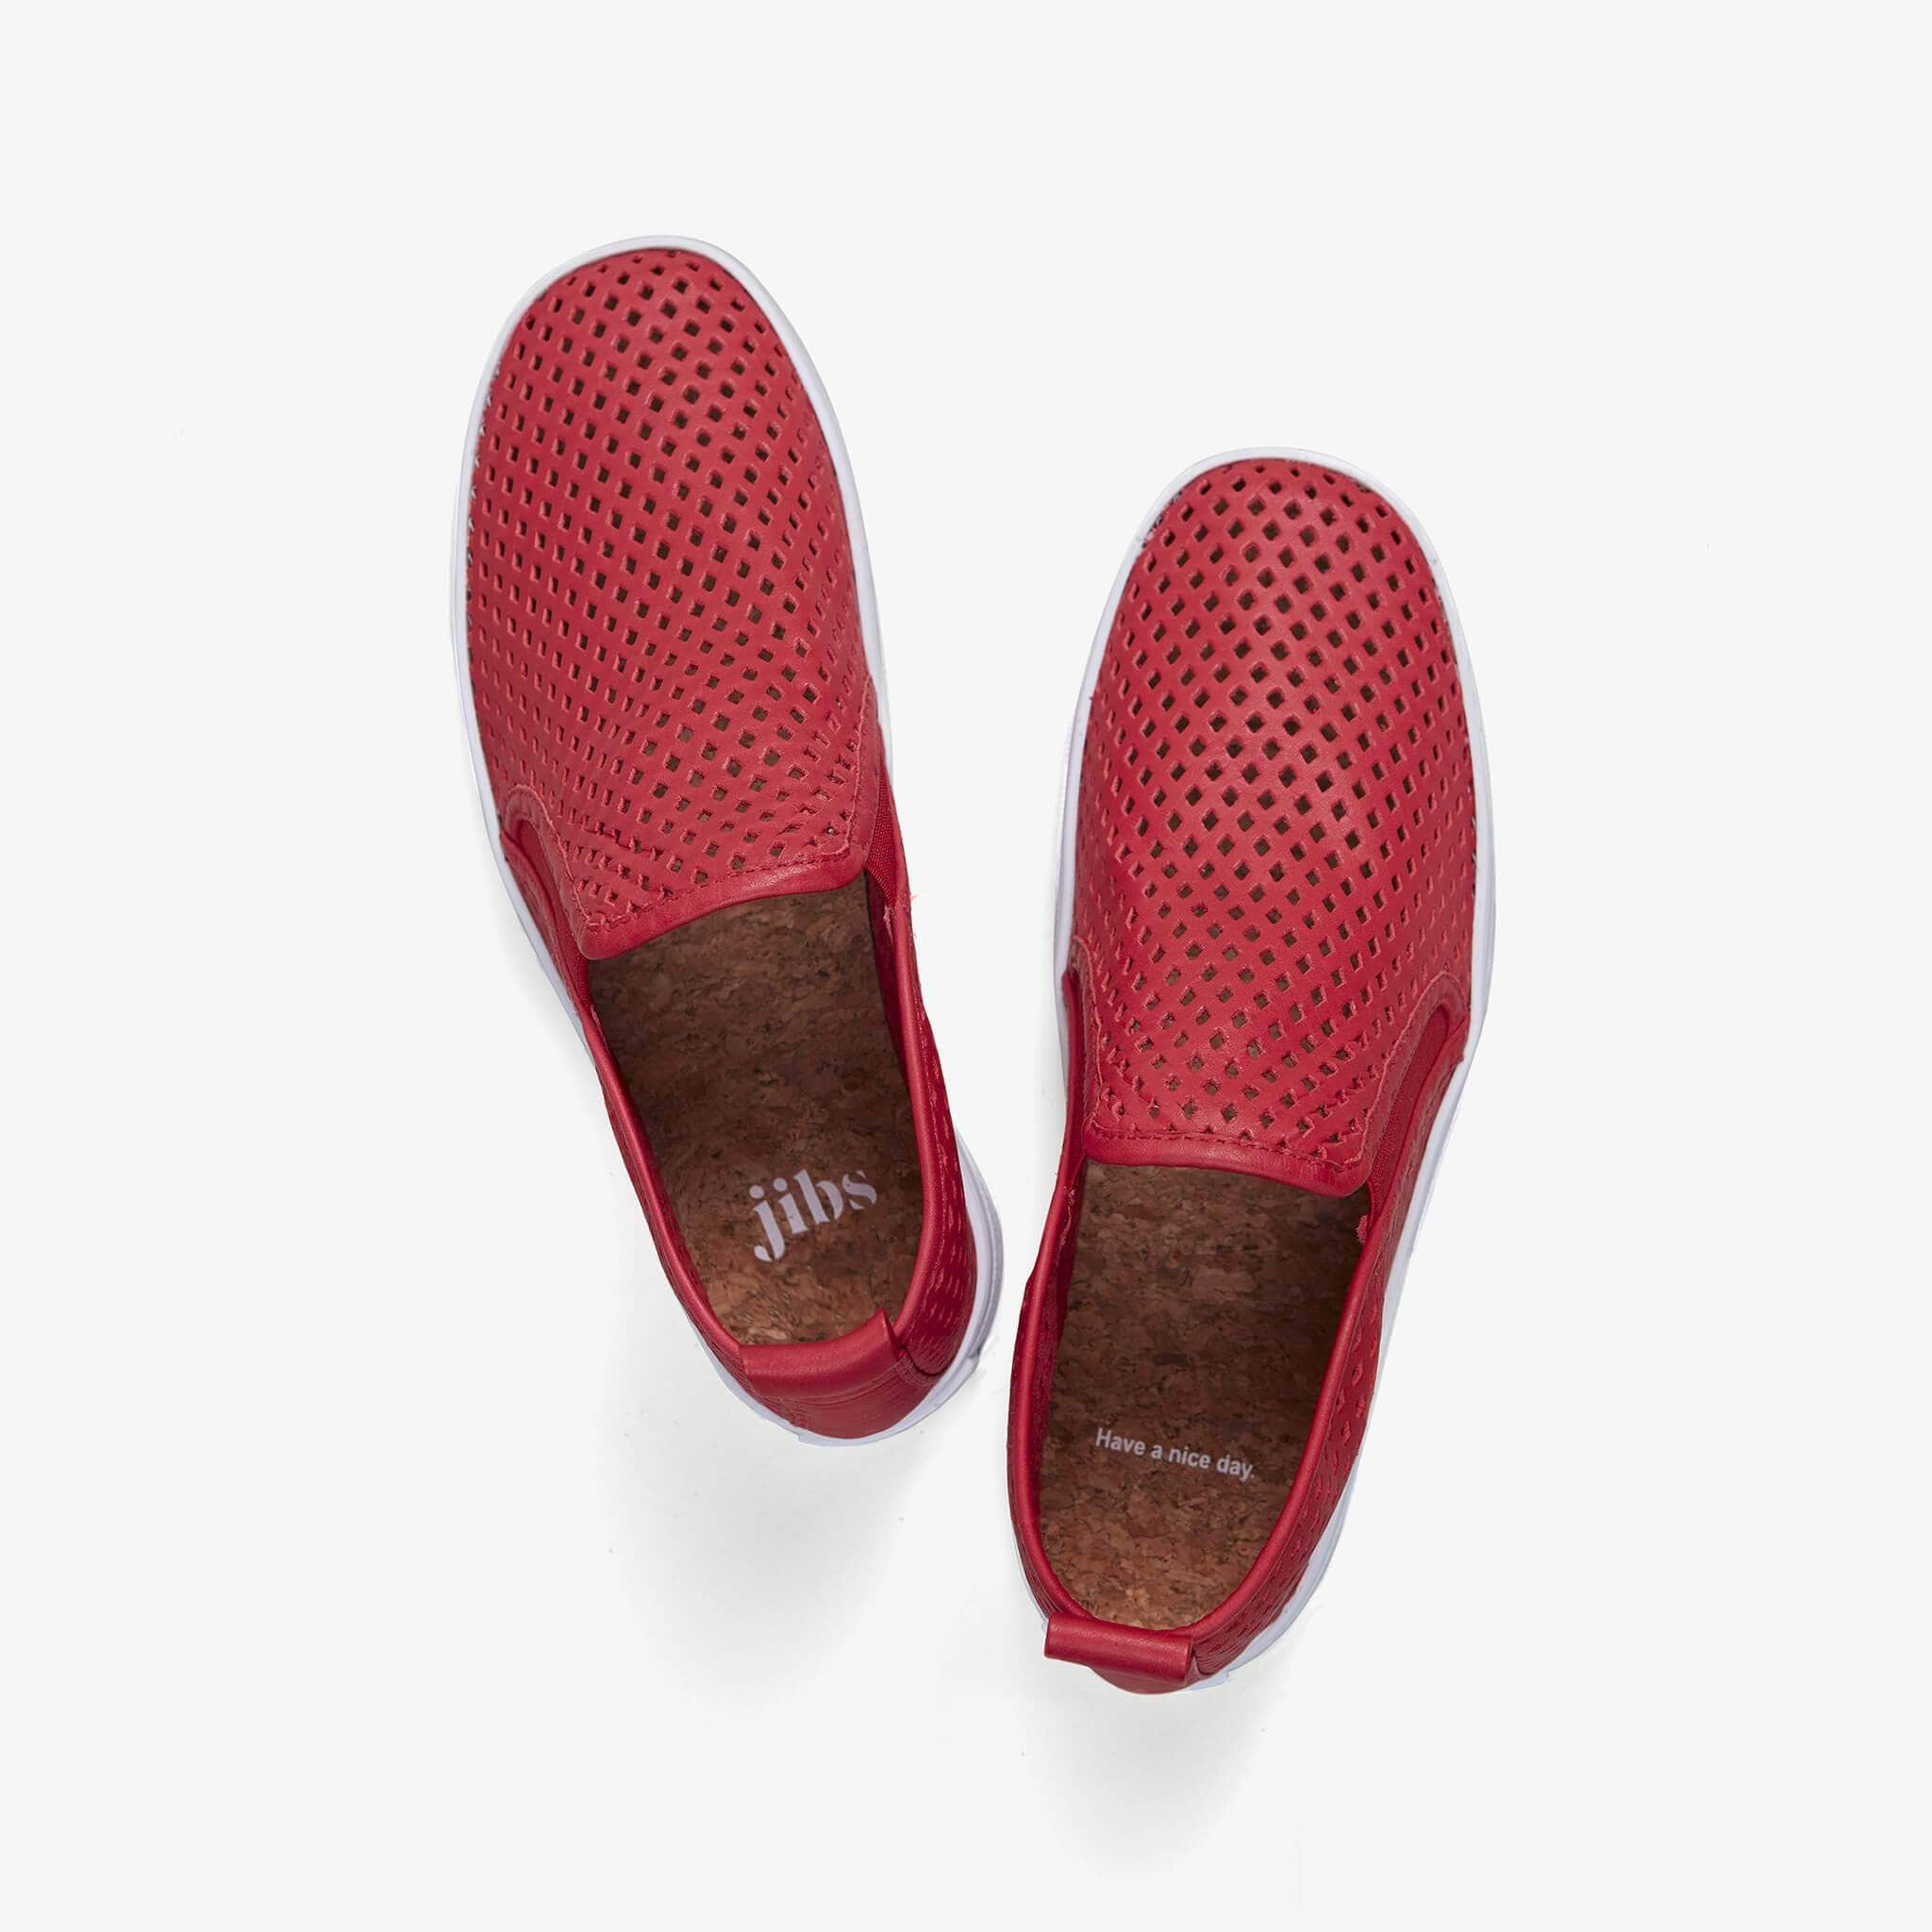 Jibs Mid Rise True Red Slip On Sneaker Bootie Top Have A Nice Day